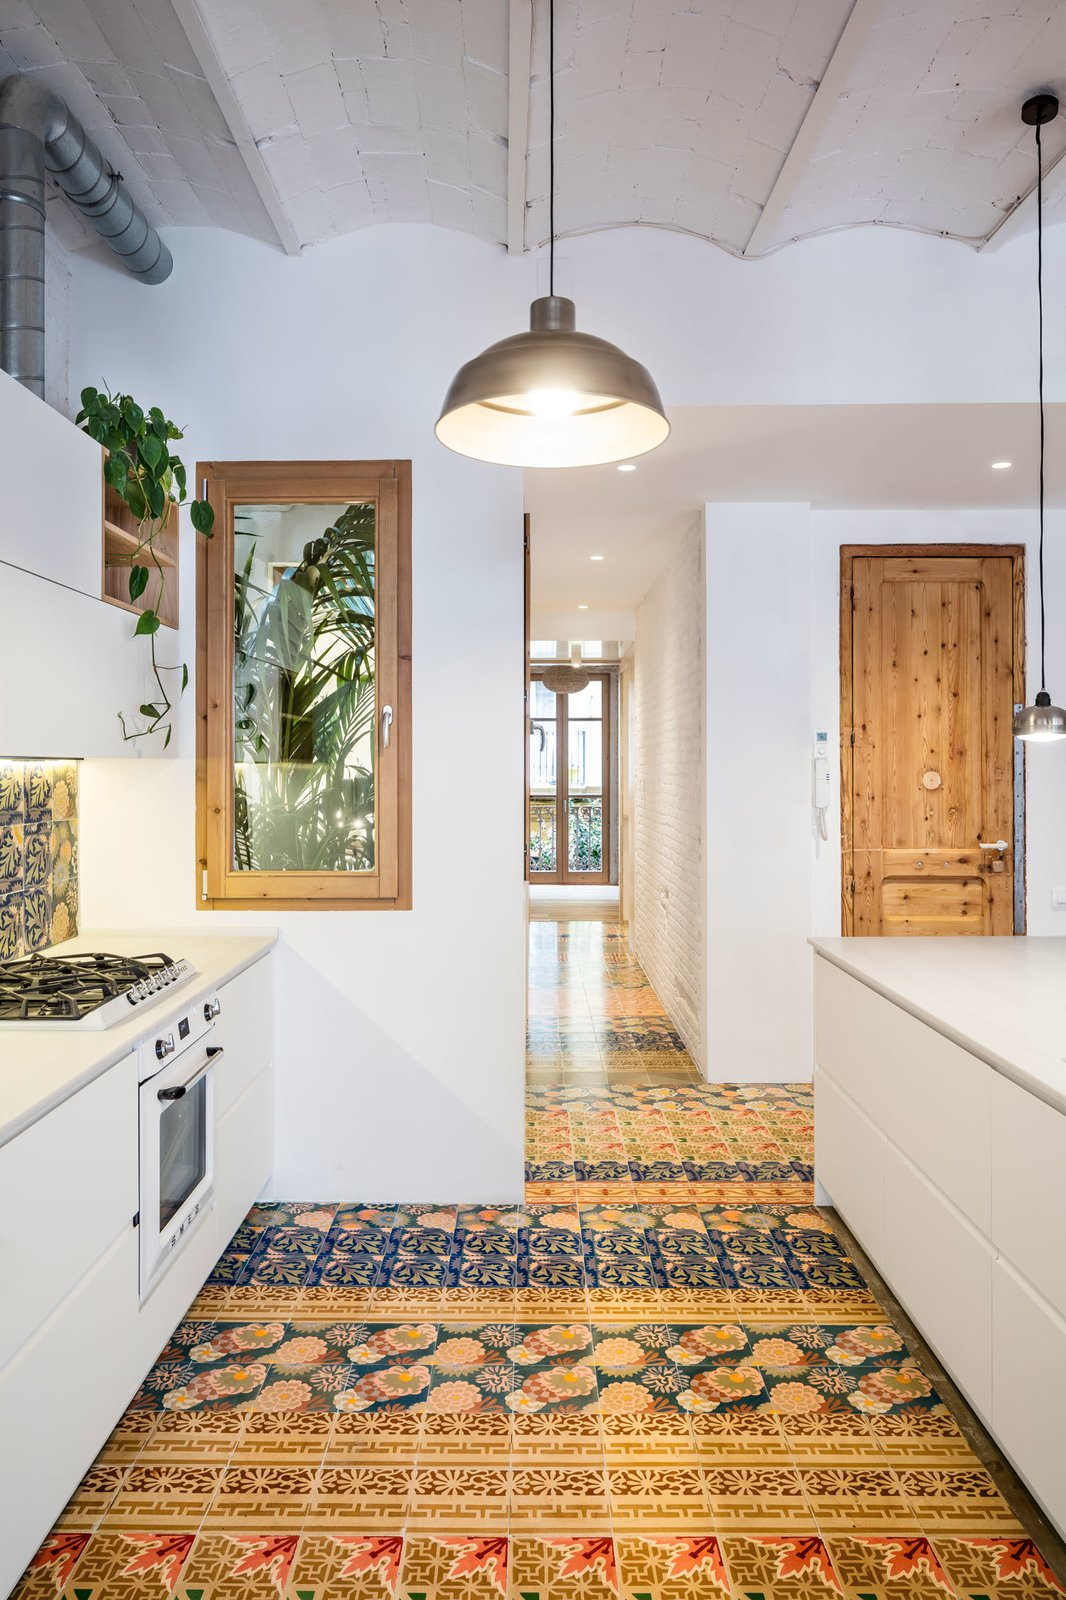 Kitchen, White Cabinet, Ceramic Tile Floor, Ceramic Tile Backsplashe, Pendant Lighting, Cooktops, and Wall Oven  Photo 8 of 14 in A Dramatic Apartment Renovation in Barcelona Features Salvaged Tile and Brick